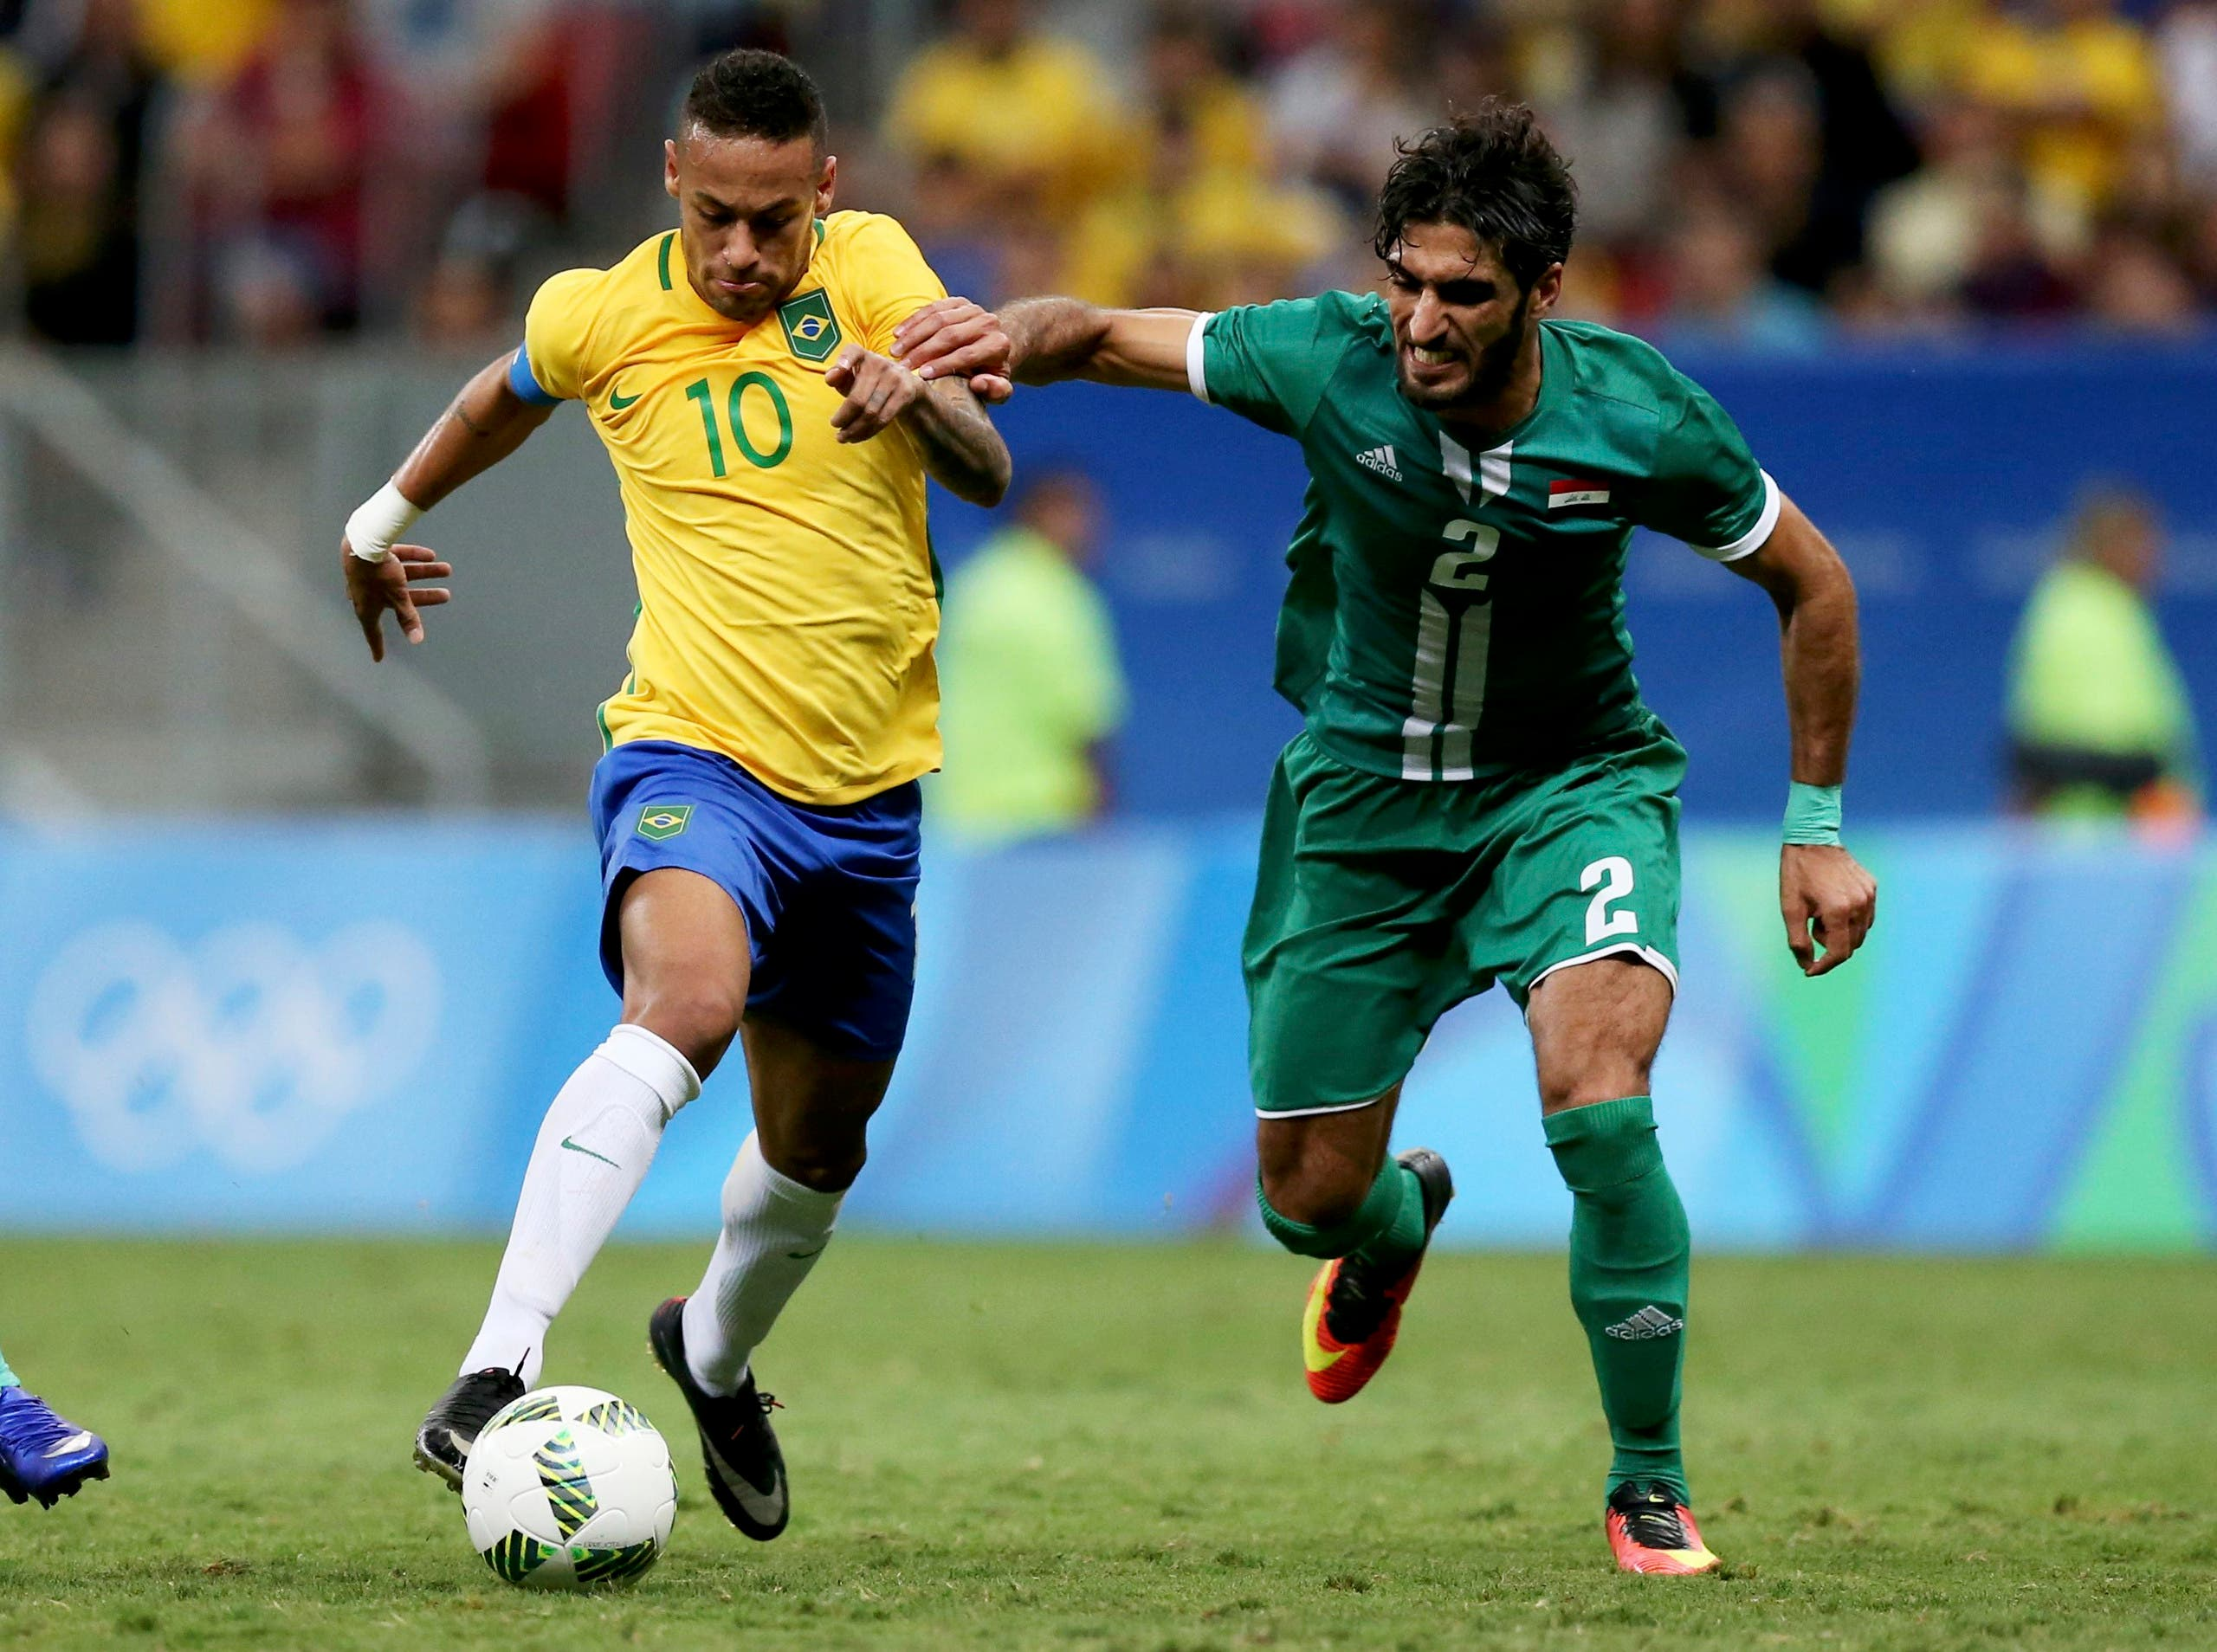 Neymar (BRA) of Brazil looks for an opening against the defense of Ahmed Ibrahim (IRQ) of Iraq in the first half. REUTERS